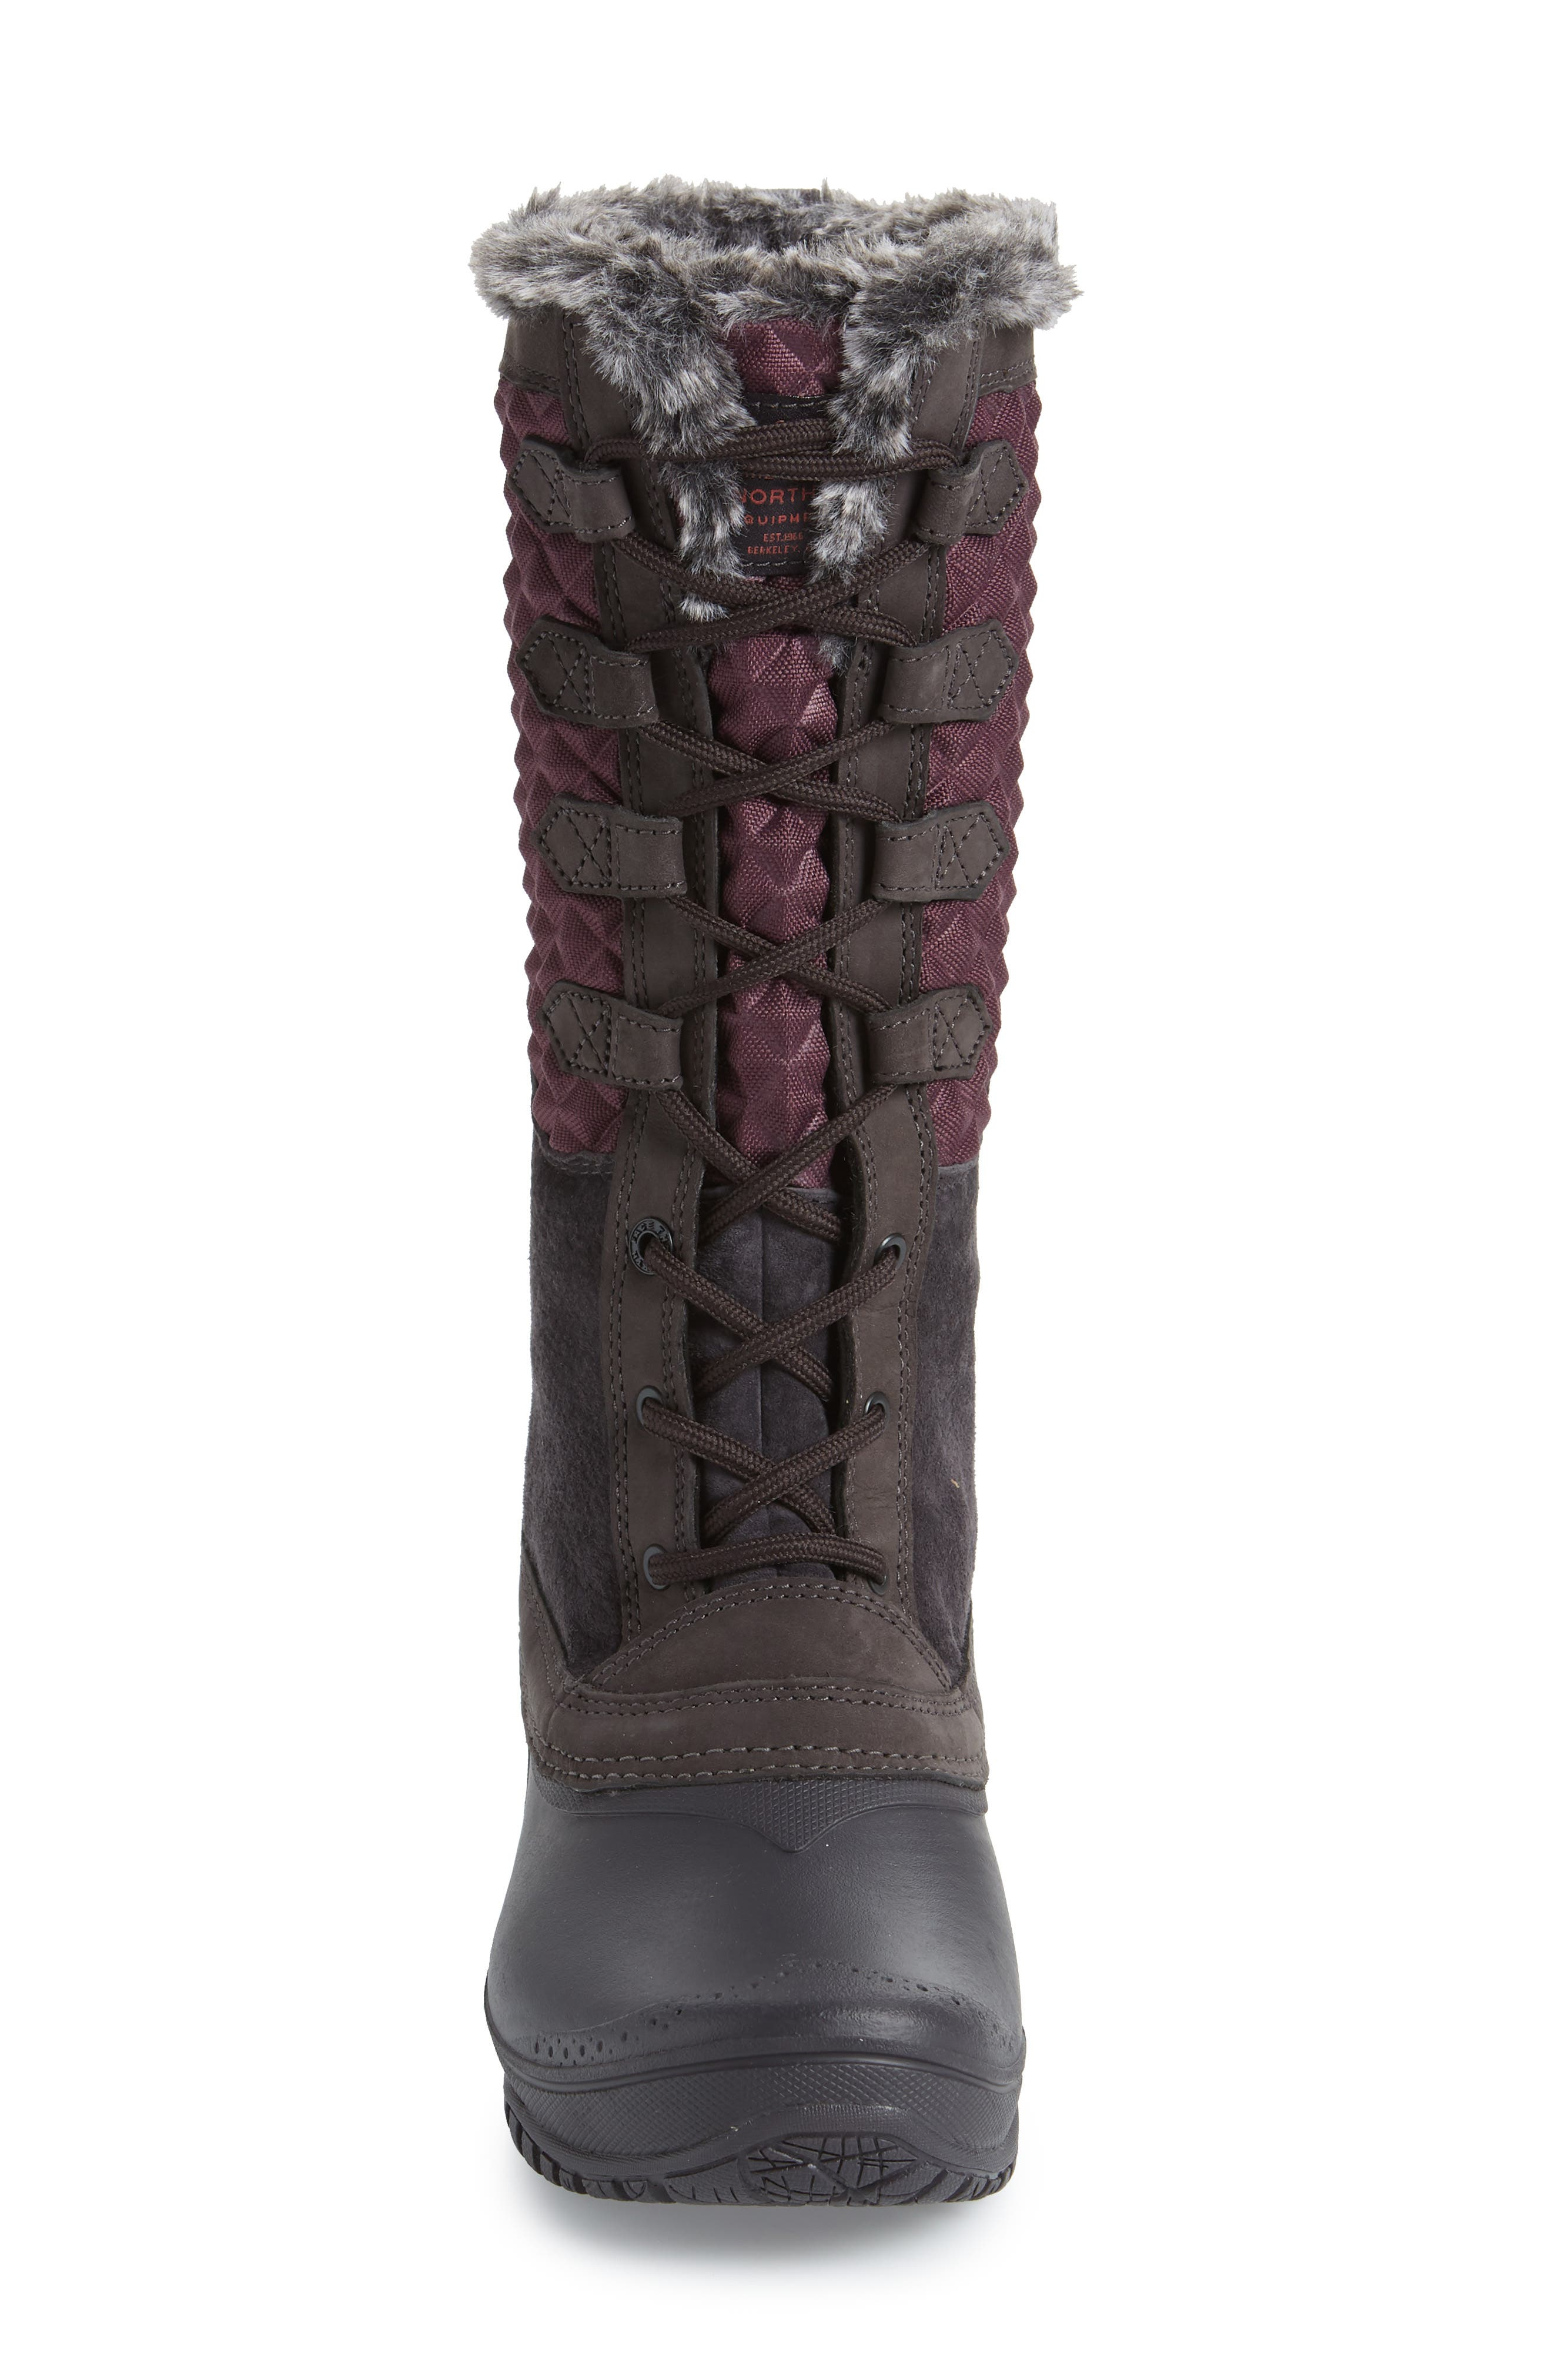 THE NORTH FACE, Shellista III Tall Waterproof Insulated Winter Boot, Alternate thumbnail 4, color, FIG/ WEATHERED BLACK